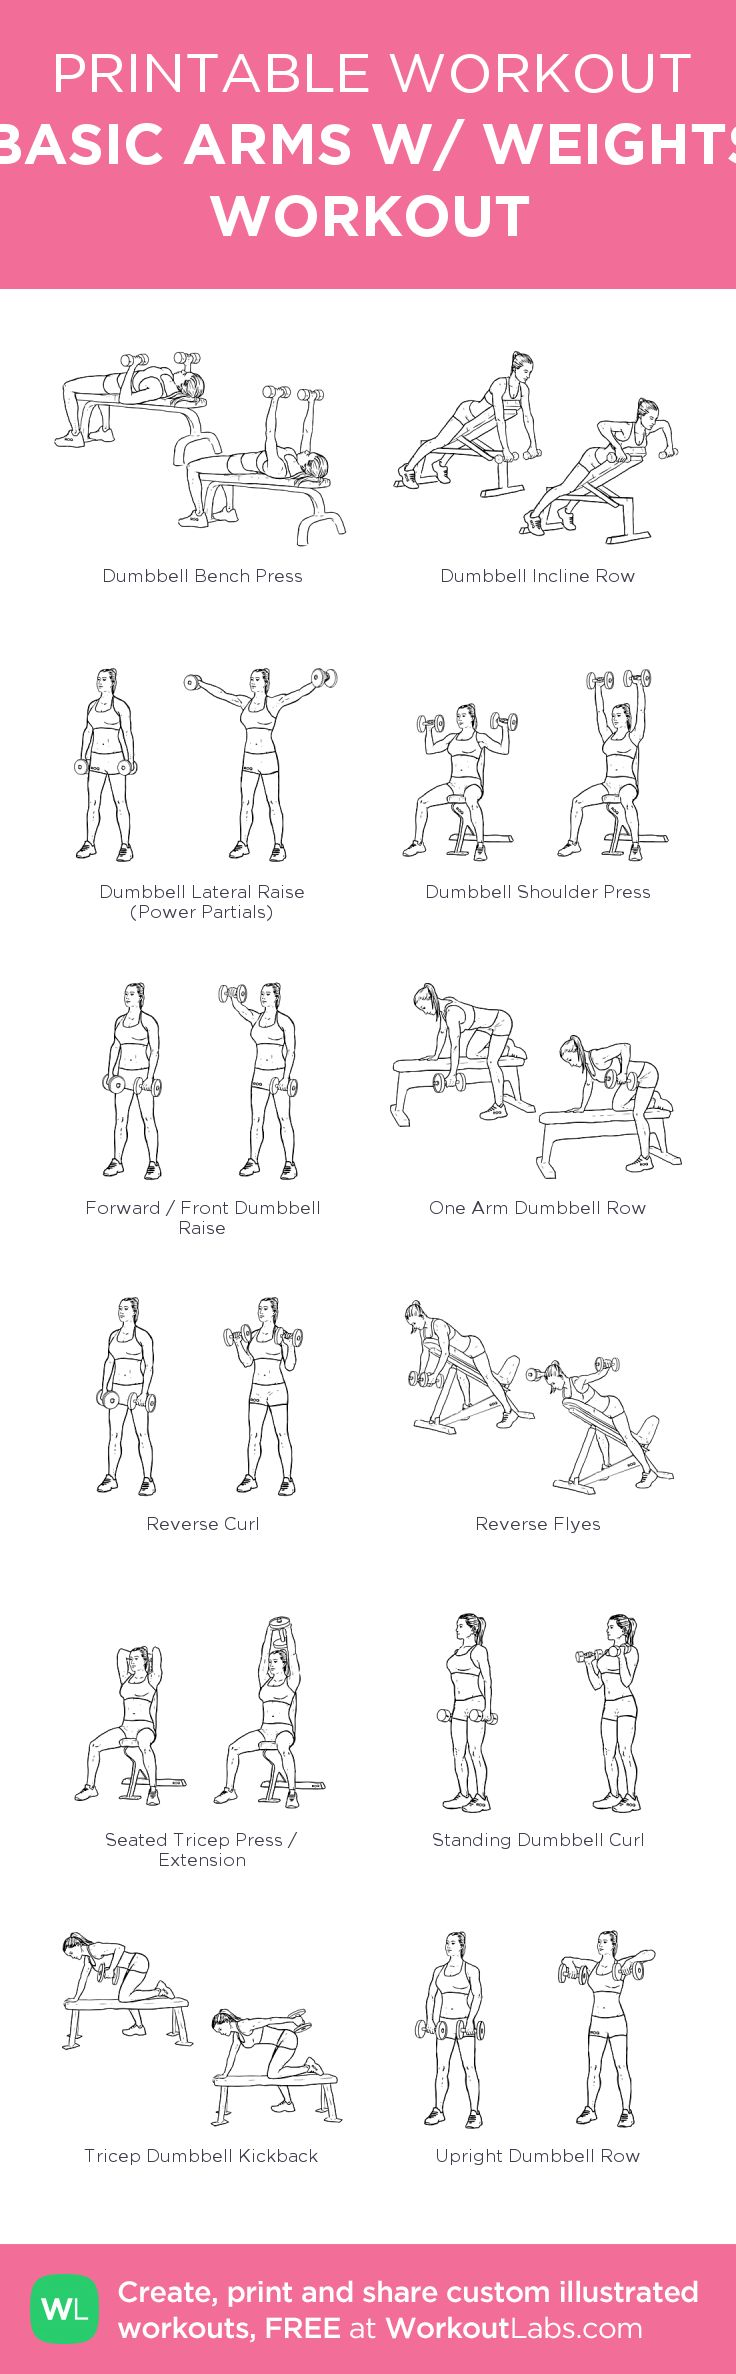 BASIC ARMS W/ WEIGHTS WORKOUT